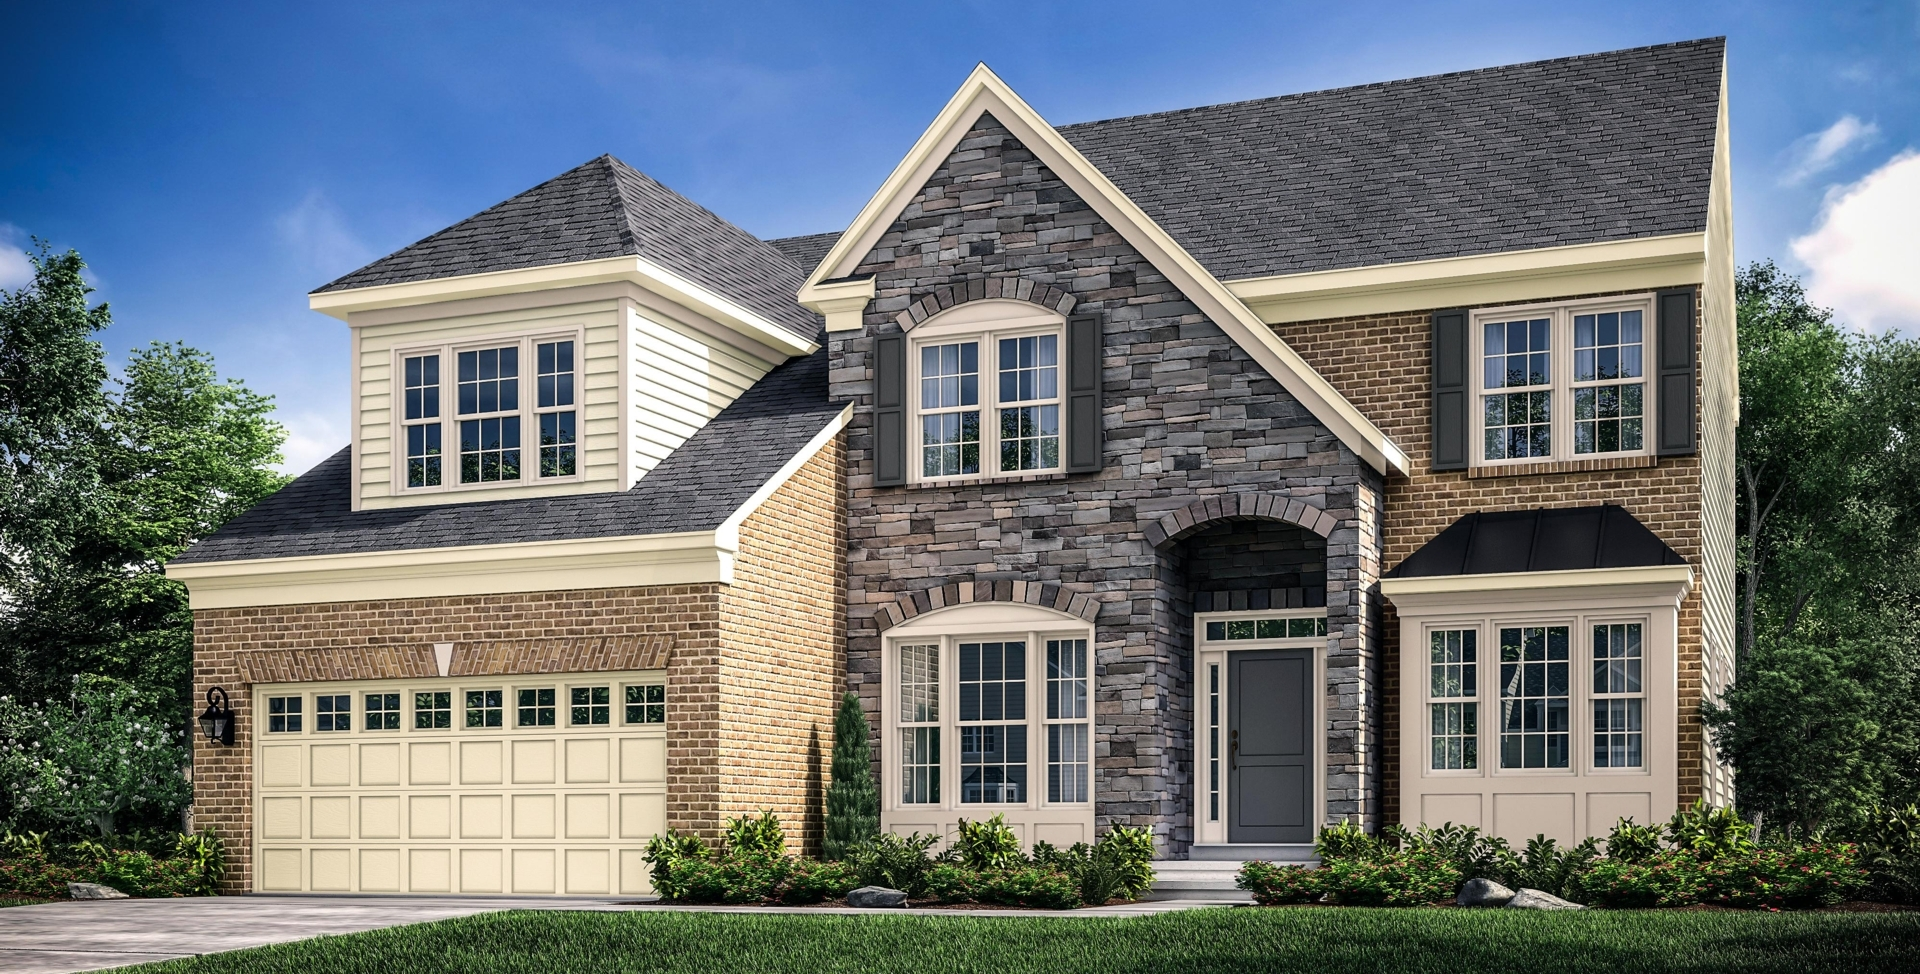 New single family home designs at canter creek upper for Atlantic home designs